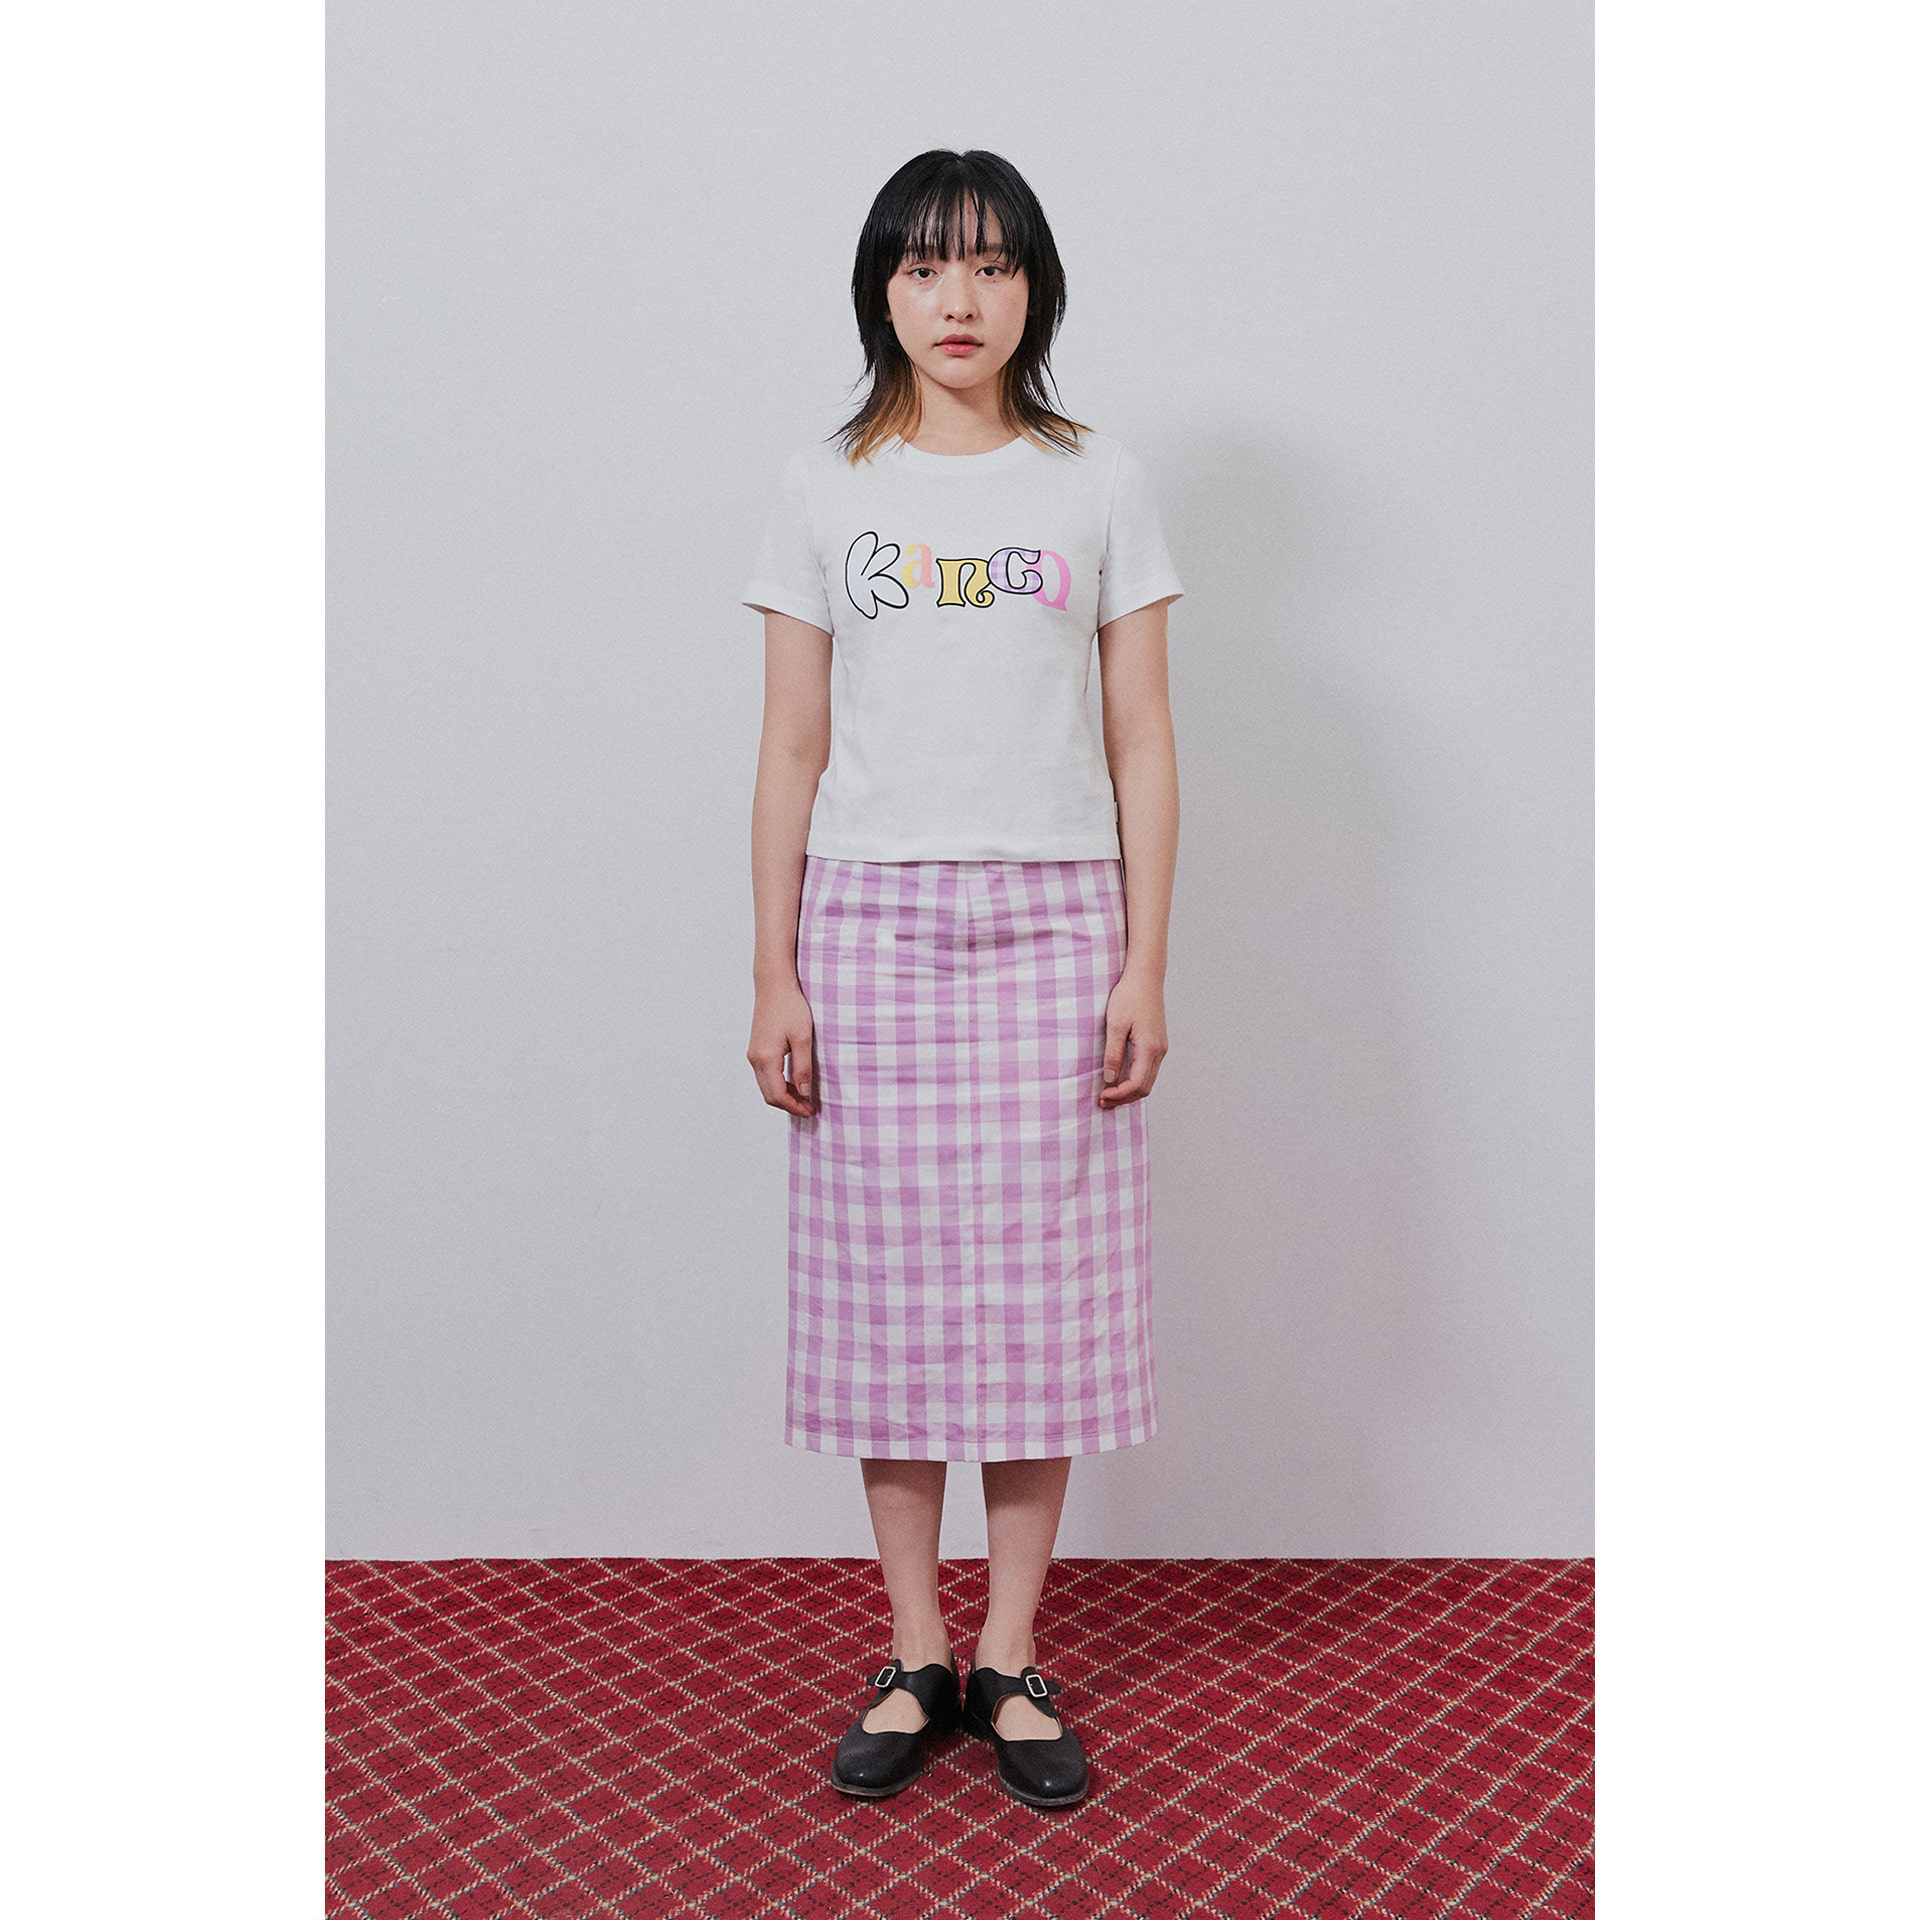 KANCO TYPO CROP TEE white